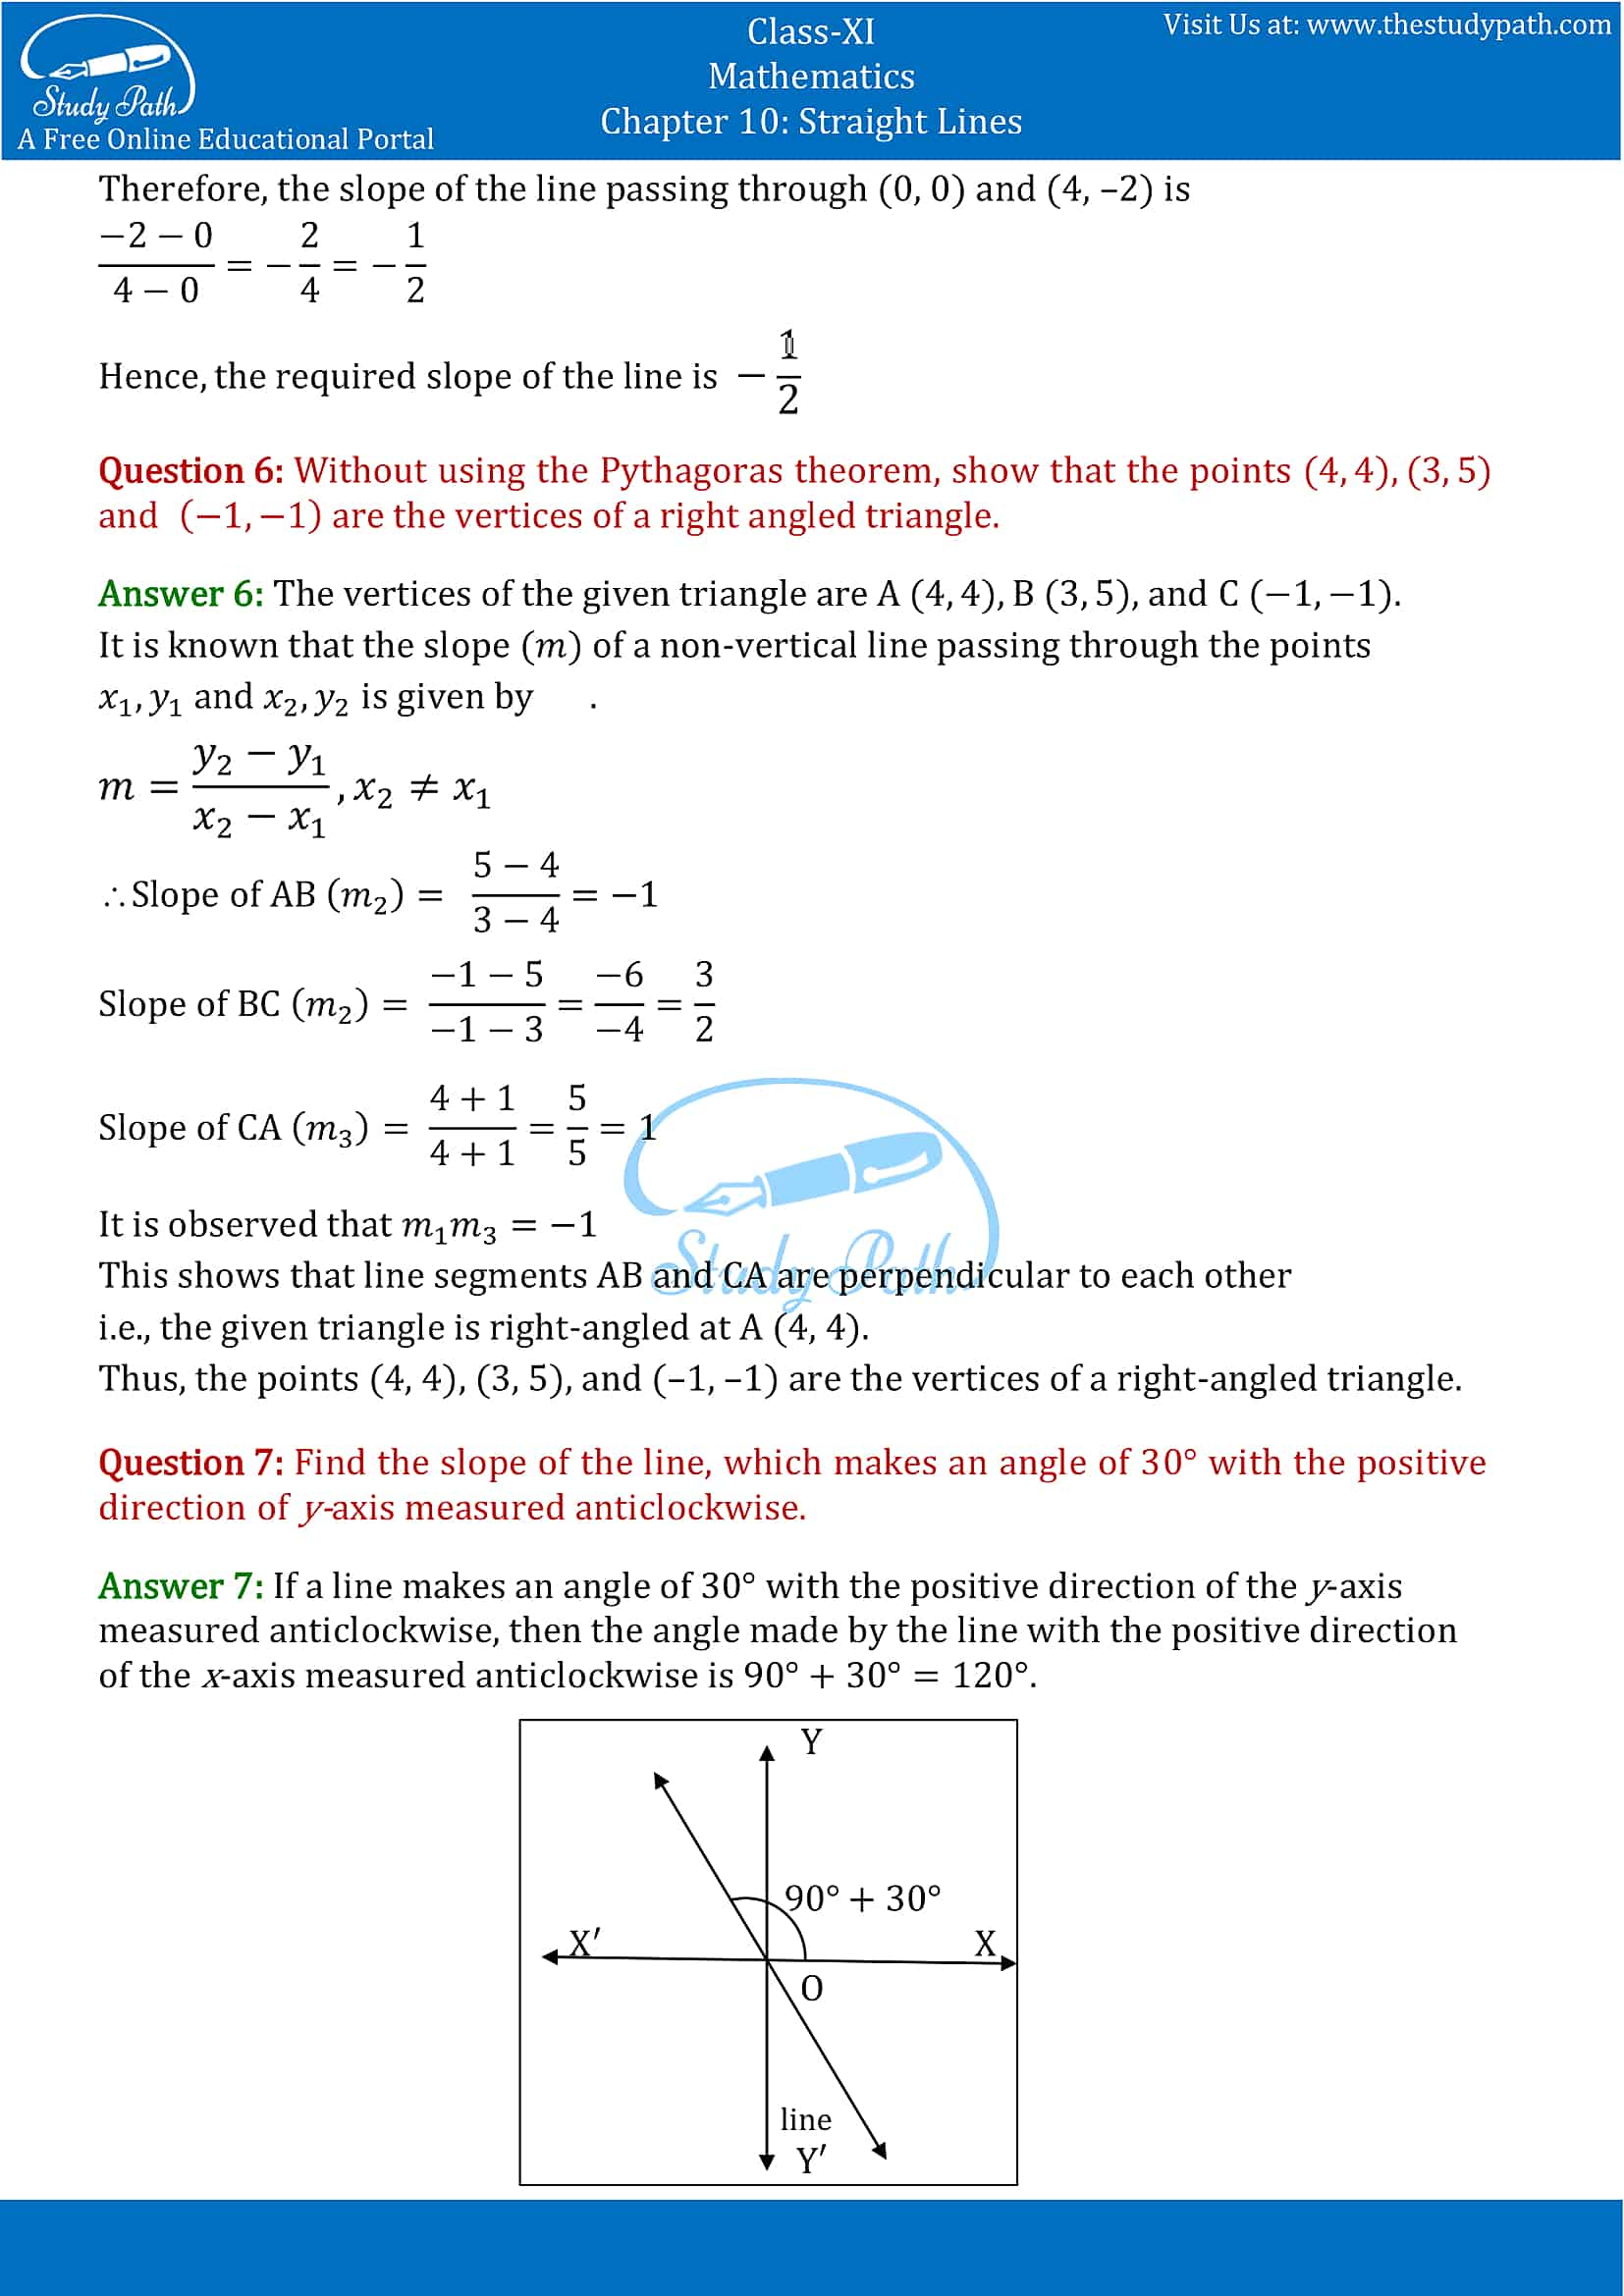 NCERT Solutions for Class 11 Maths chapter 10 Straight Lines Part-4